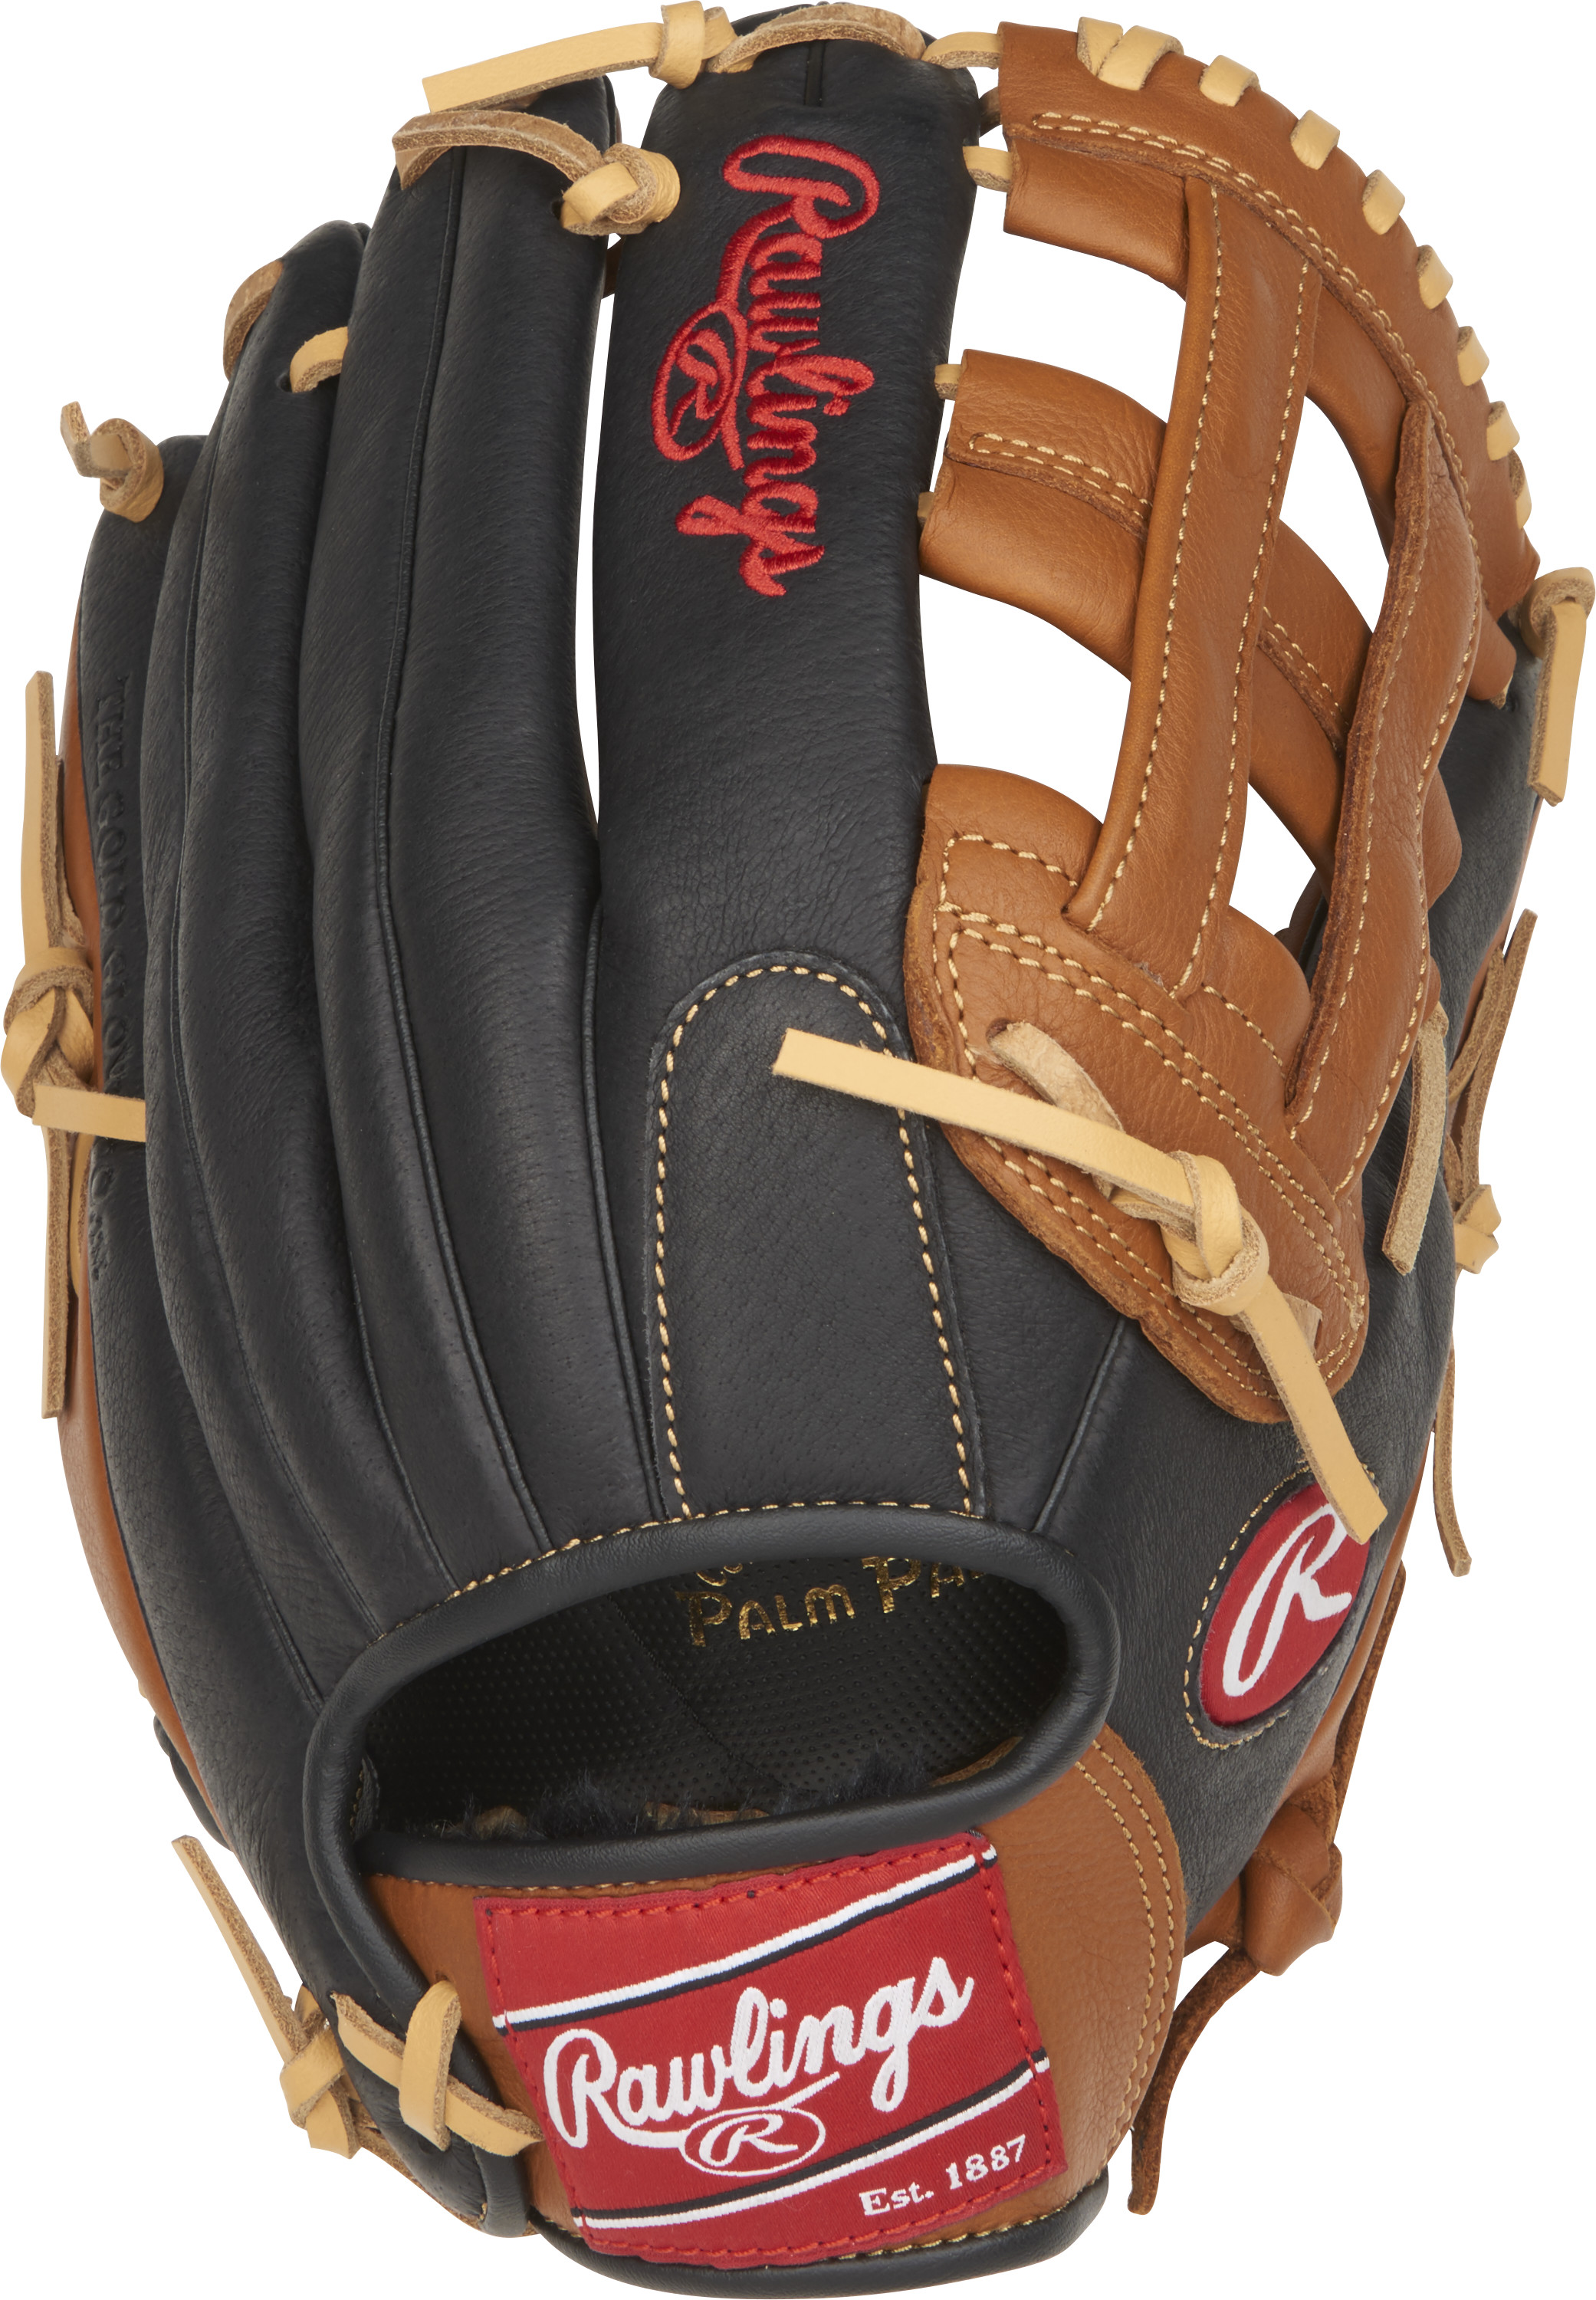 http://www.bestbatdeals.com/images/gloves/rawlings/P120GBH-2.jpg